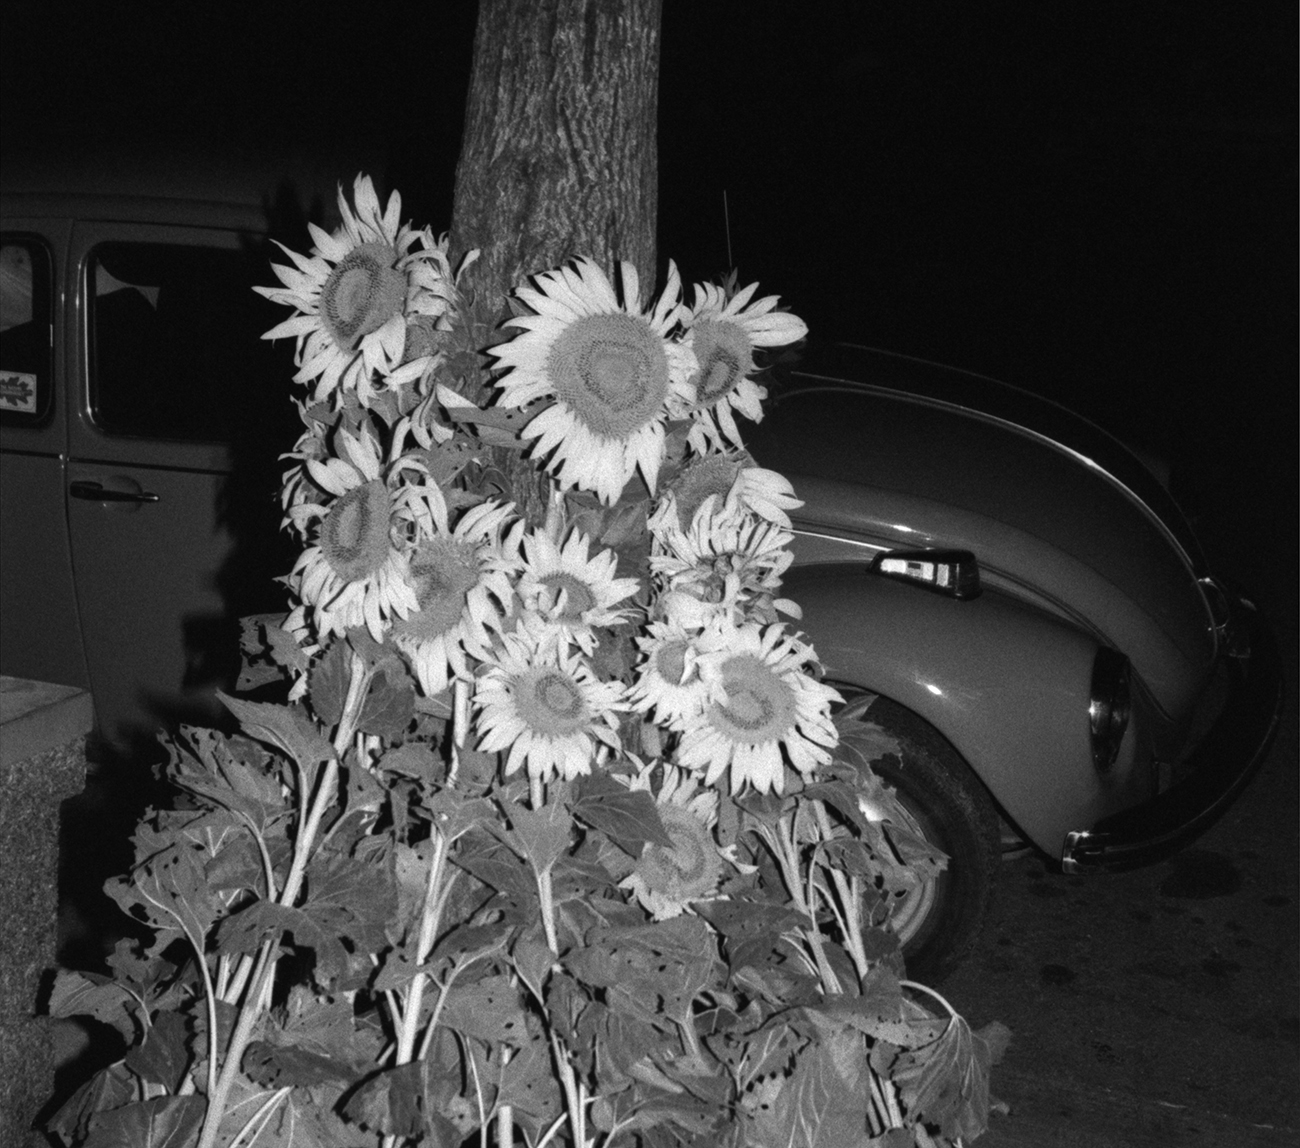 Sunflowers adorn the outside of Liberty Hall. VW Beatle, Kansas